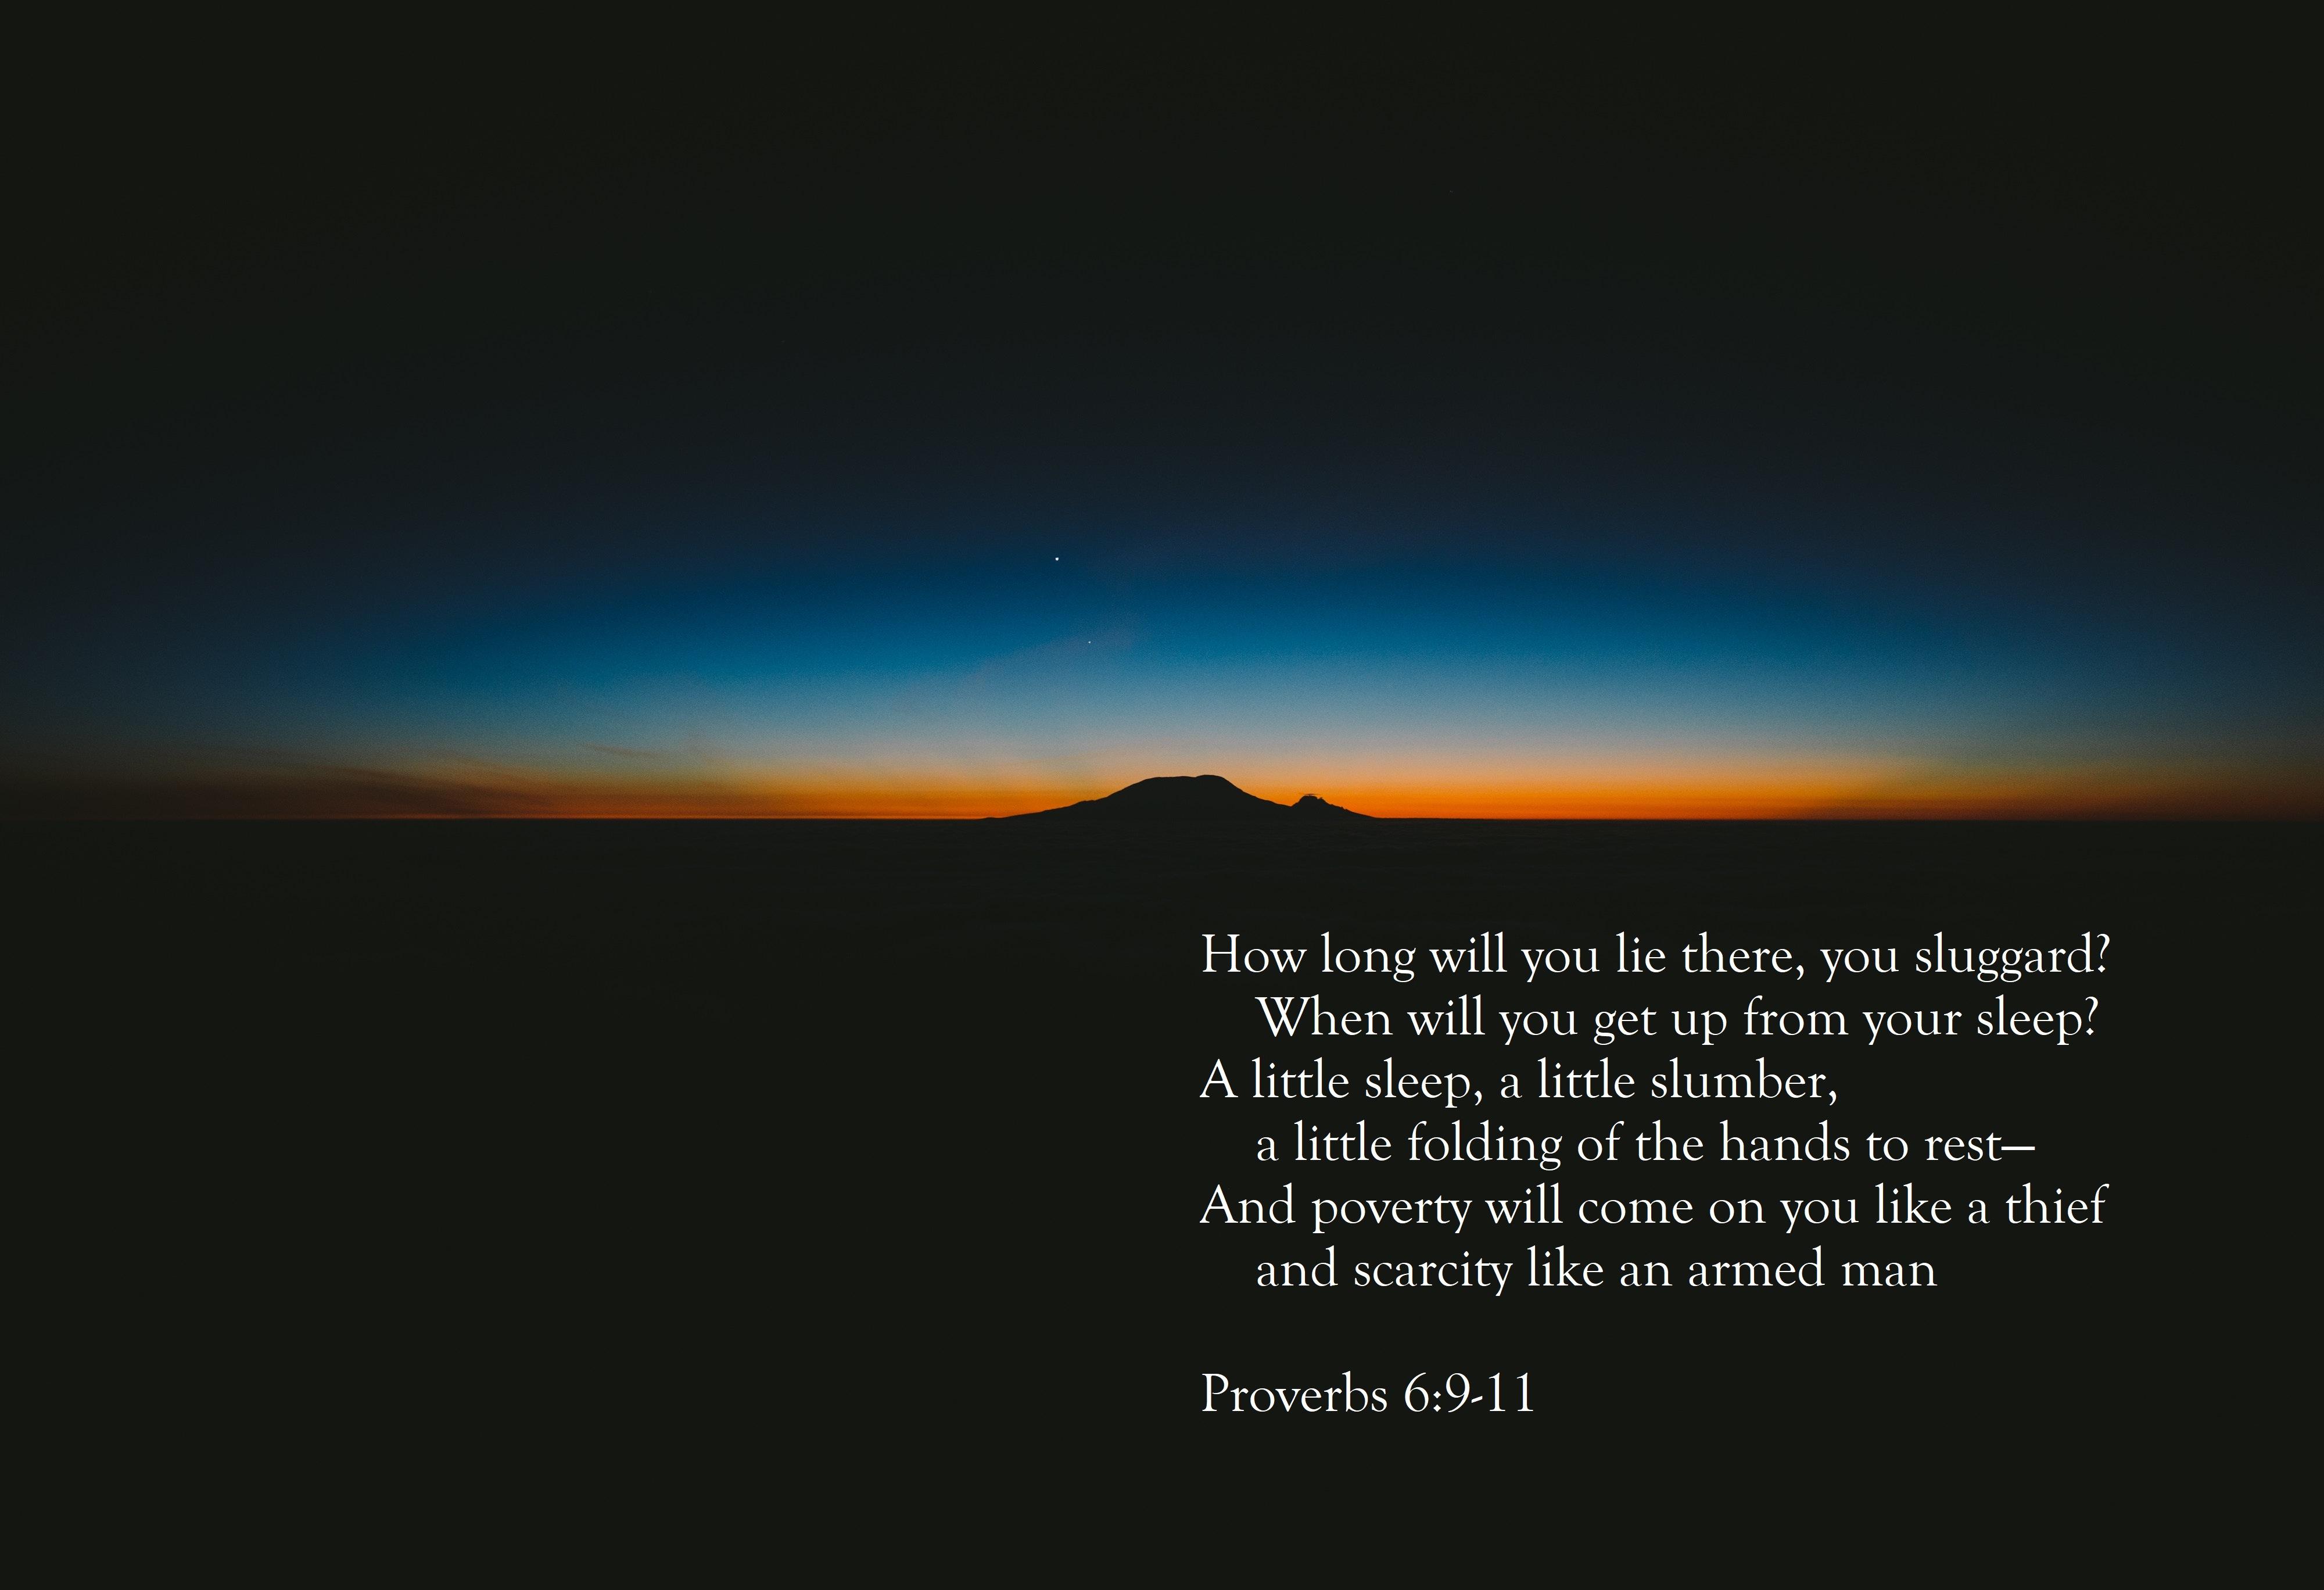 [Image] How long will you lie there?